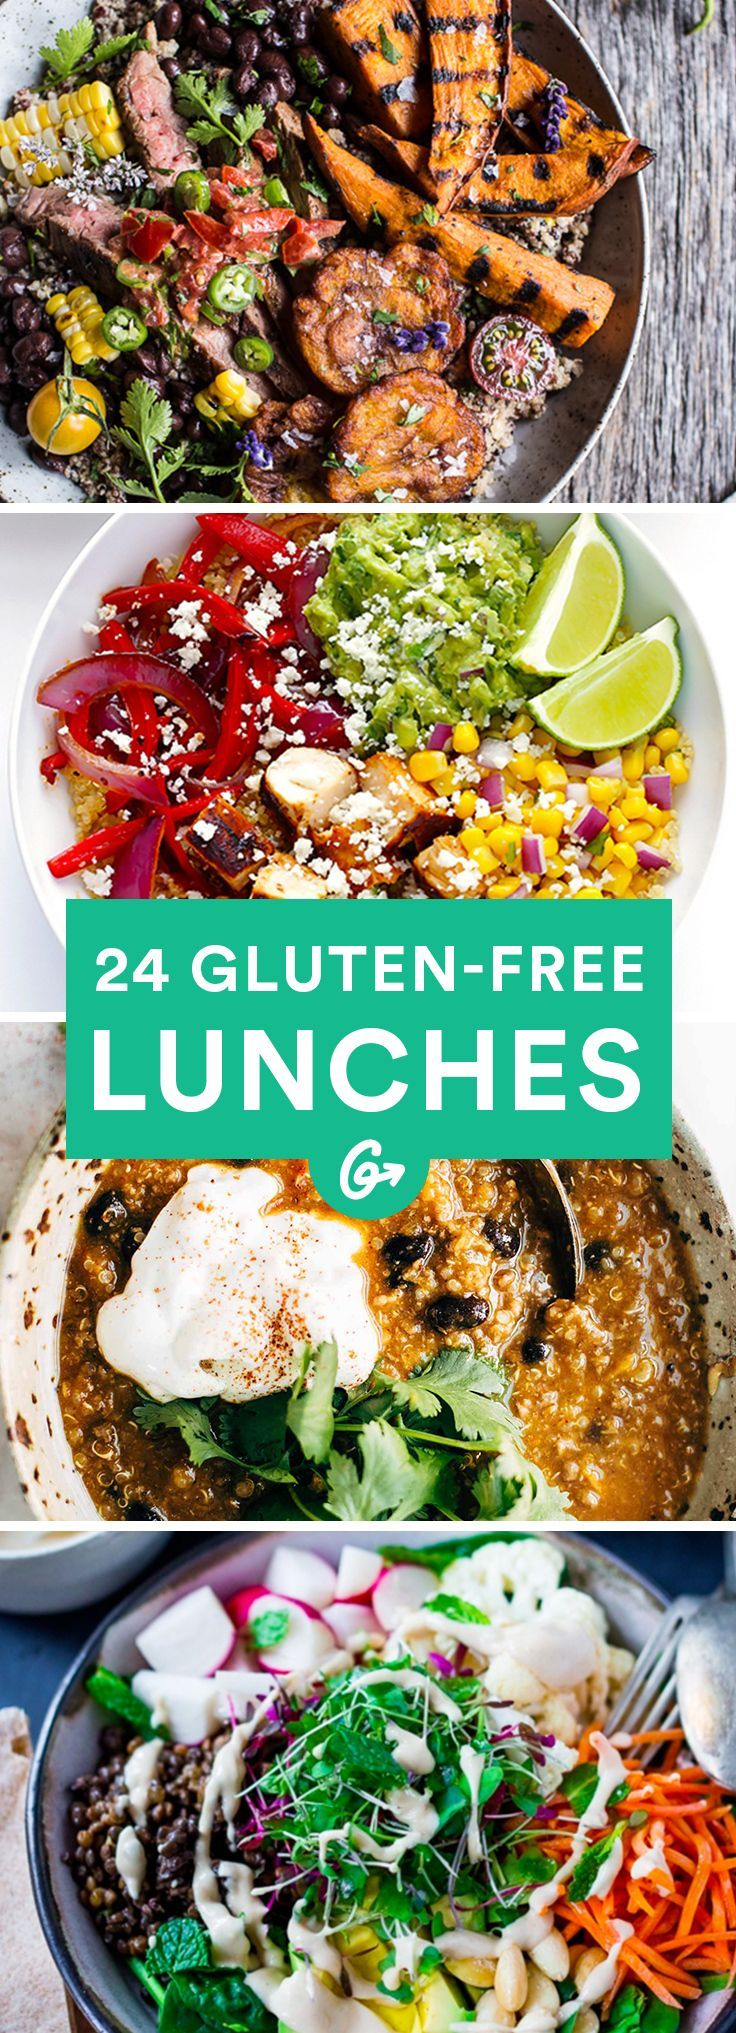 24 Gluten-Free Lunches (That Aren\'t All Salads) #glutenfree #lunch #recipes http://greatist.com/eat/gluten-free-recipes-to-make-for-lunch